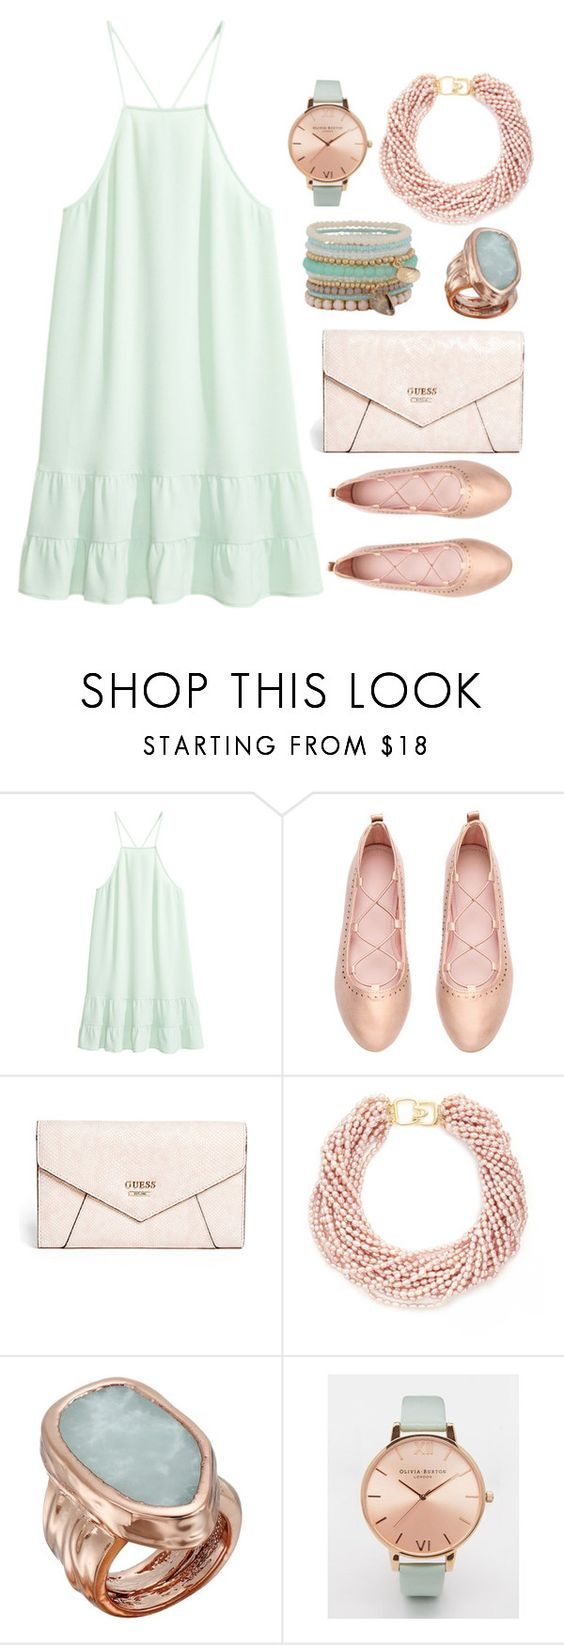 """Candy Colors"" by alynncameron ❤ liked on Polyvore featuring GUESS, Kenneth Jay Lane, Vince Camuto, Olivia Burton and ALDO"